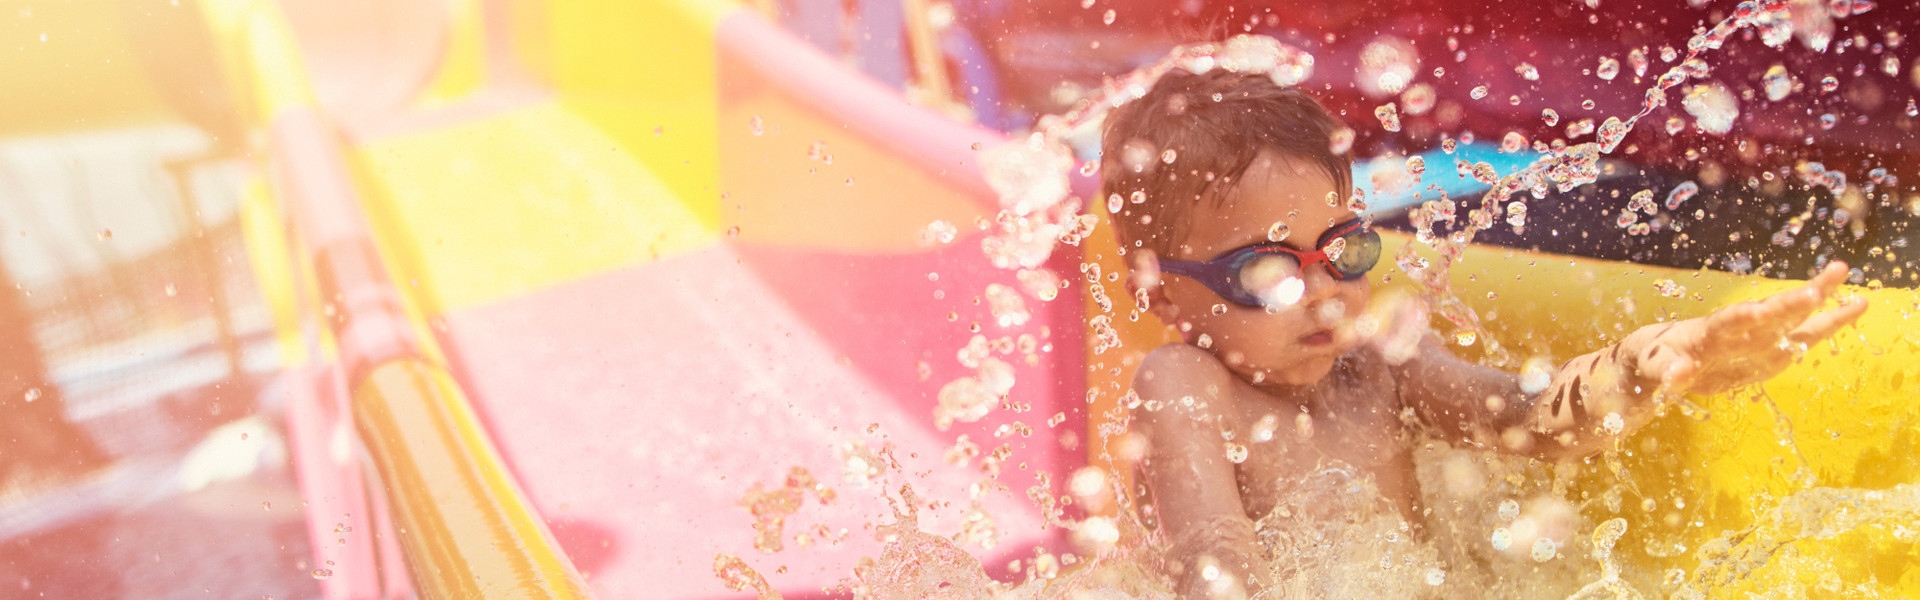 Kid splashing down at our new water park in Orlando, FL | Hotels With Water Parks in Orlando Florida | Westgate Lakes Resort & Spa